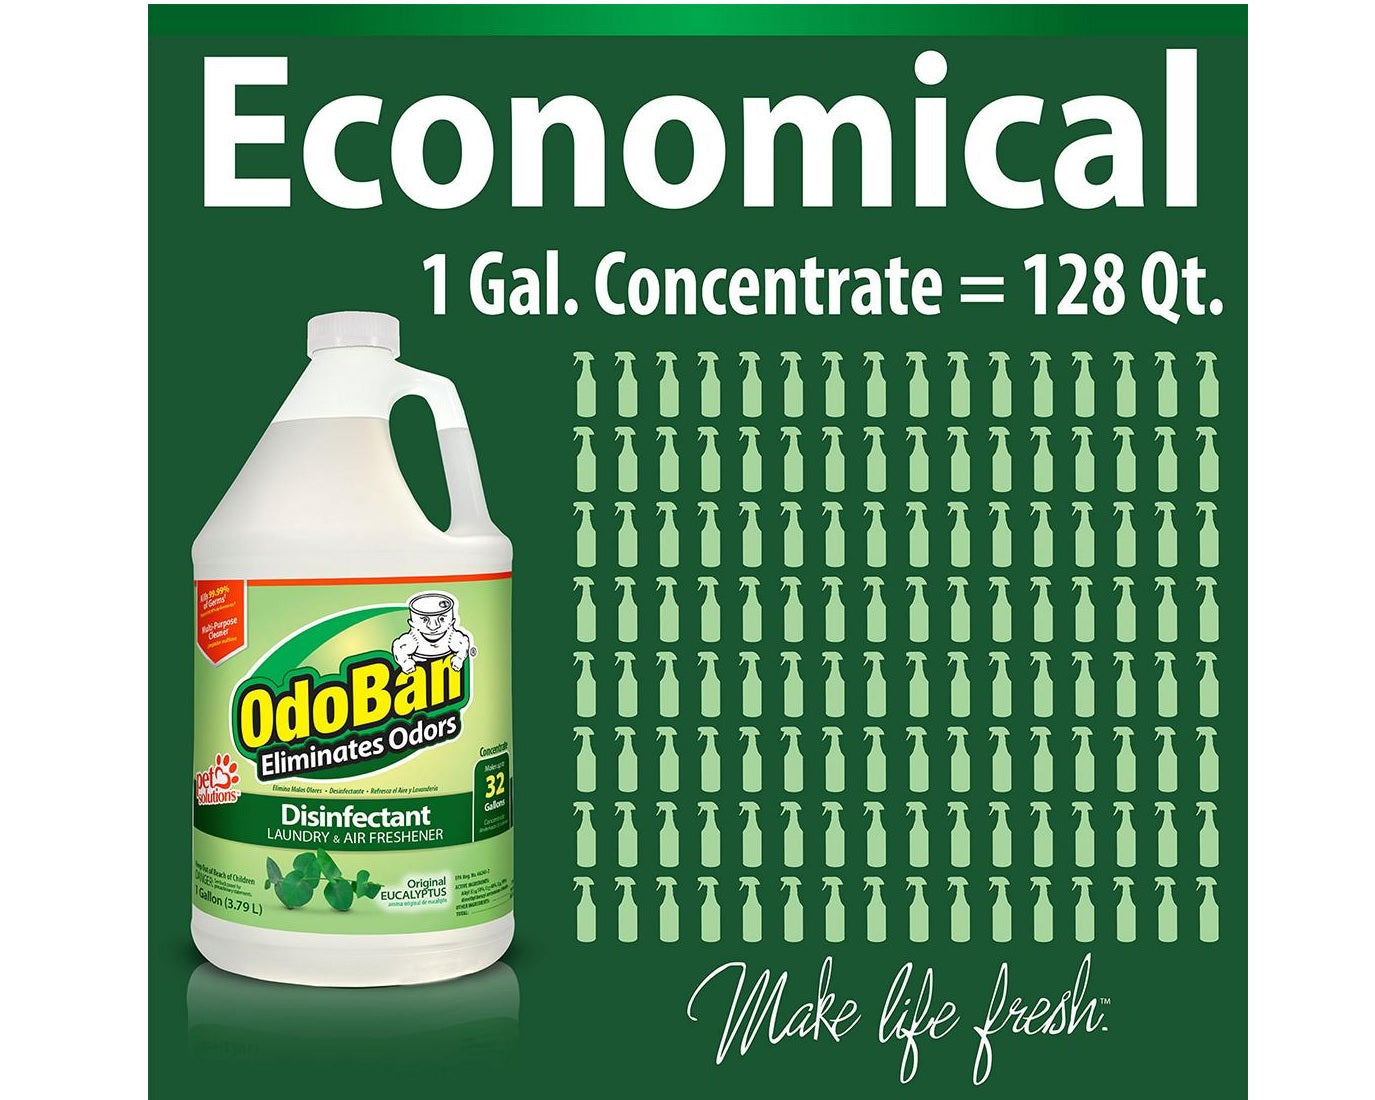 OdoBan Concentrate Multi-Purpose Odor Eliminator, 1 Gallon